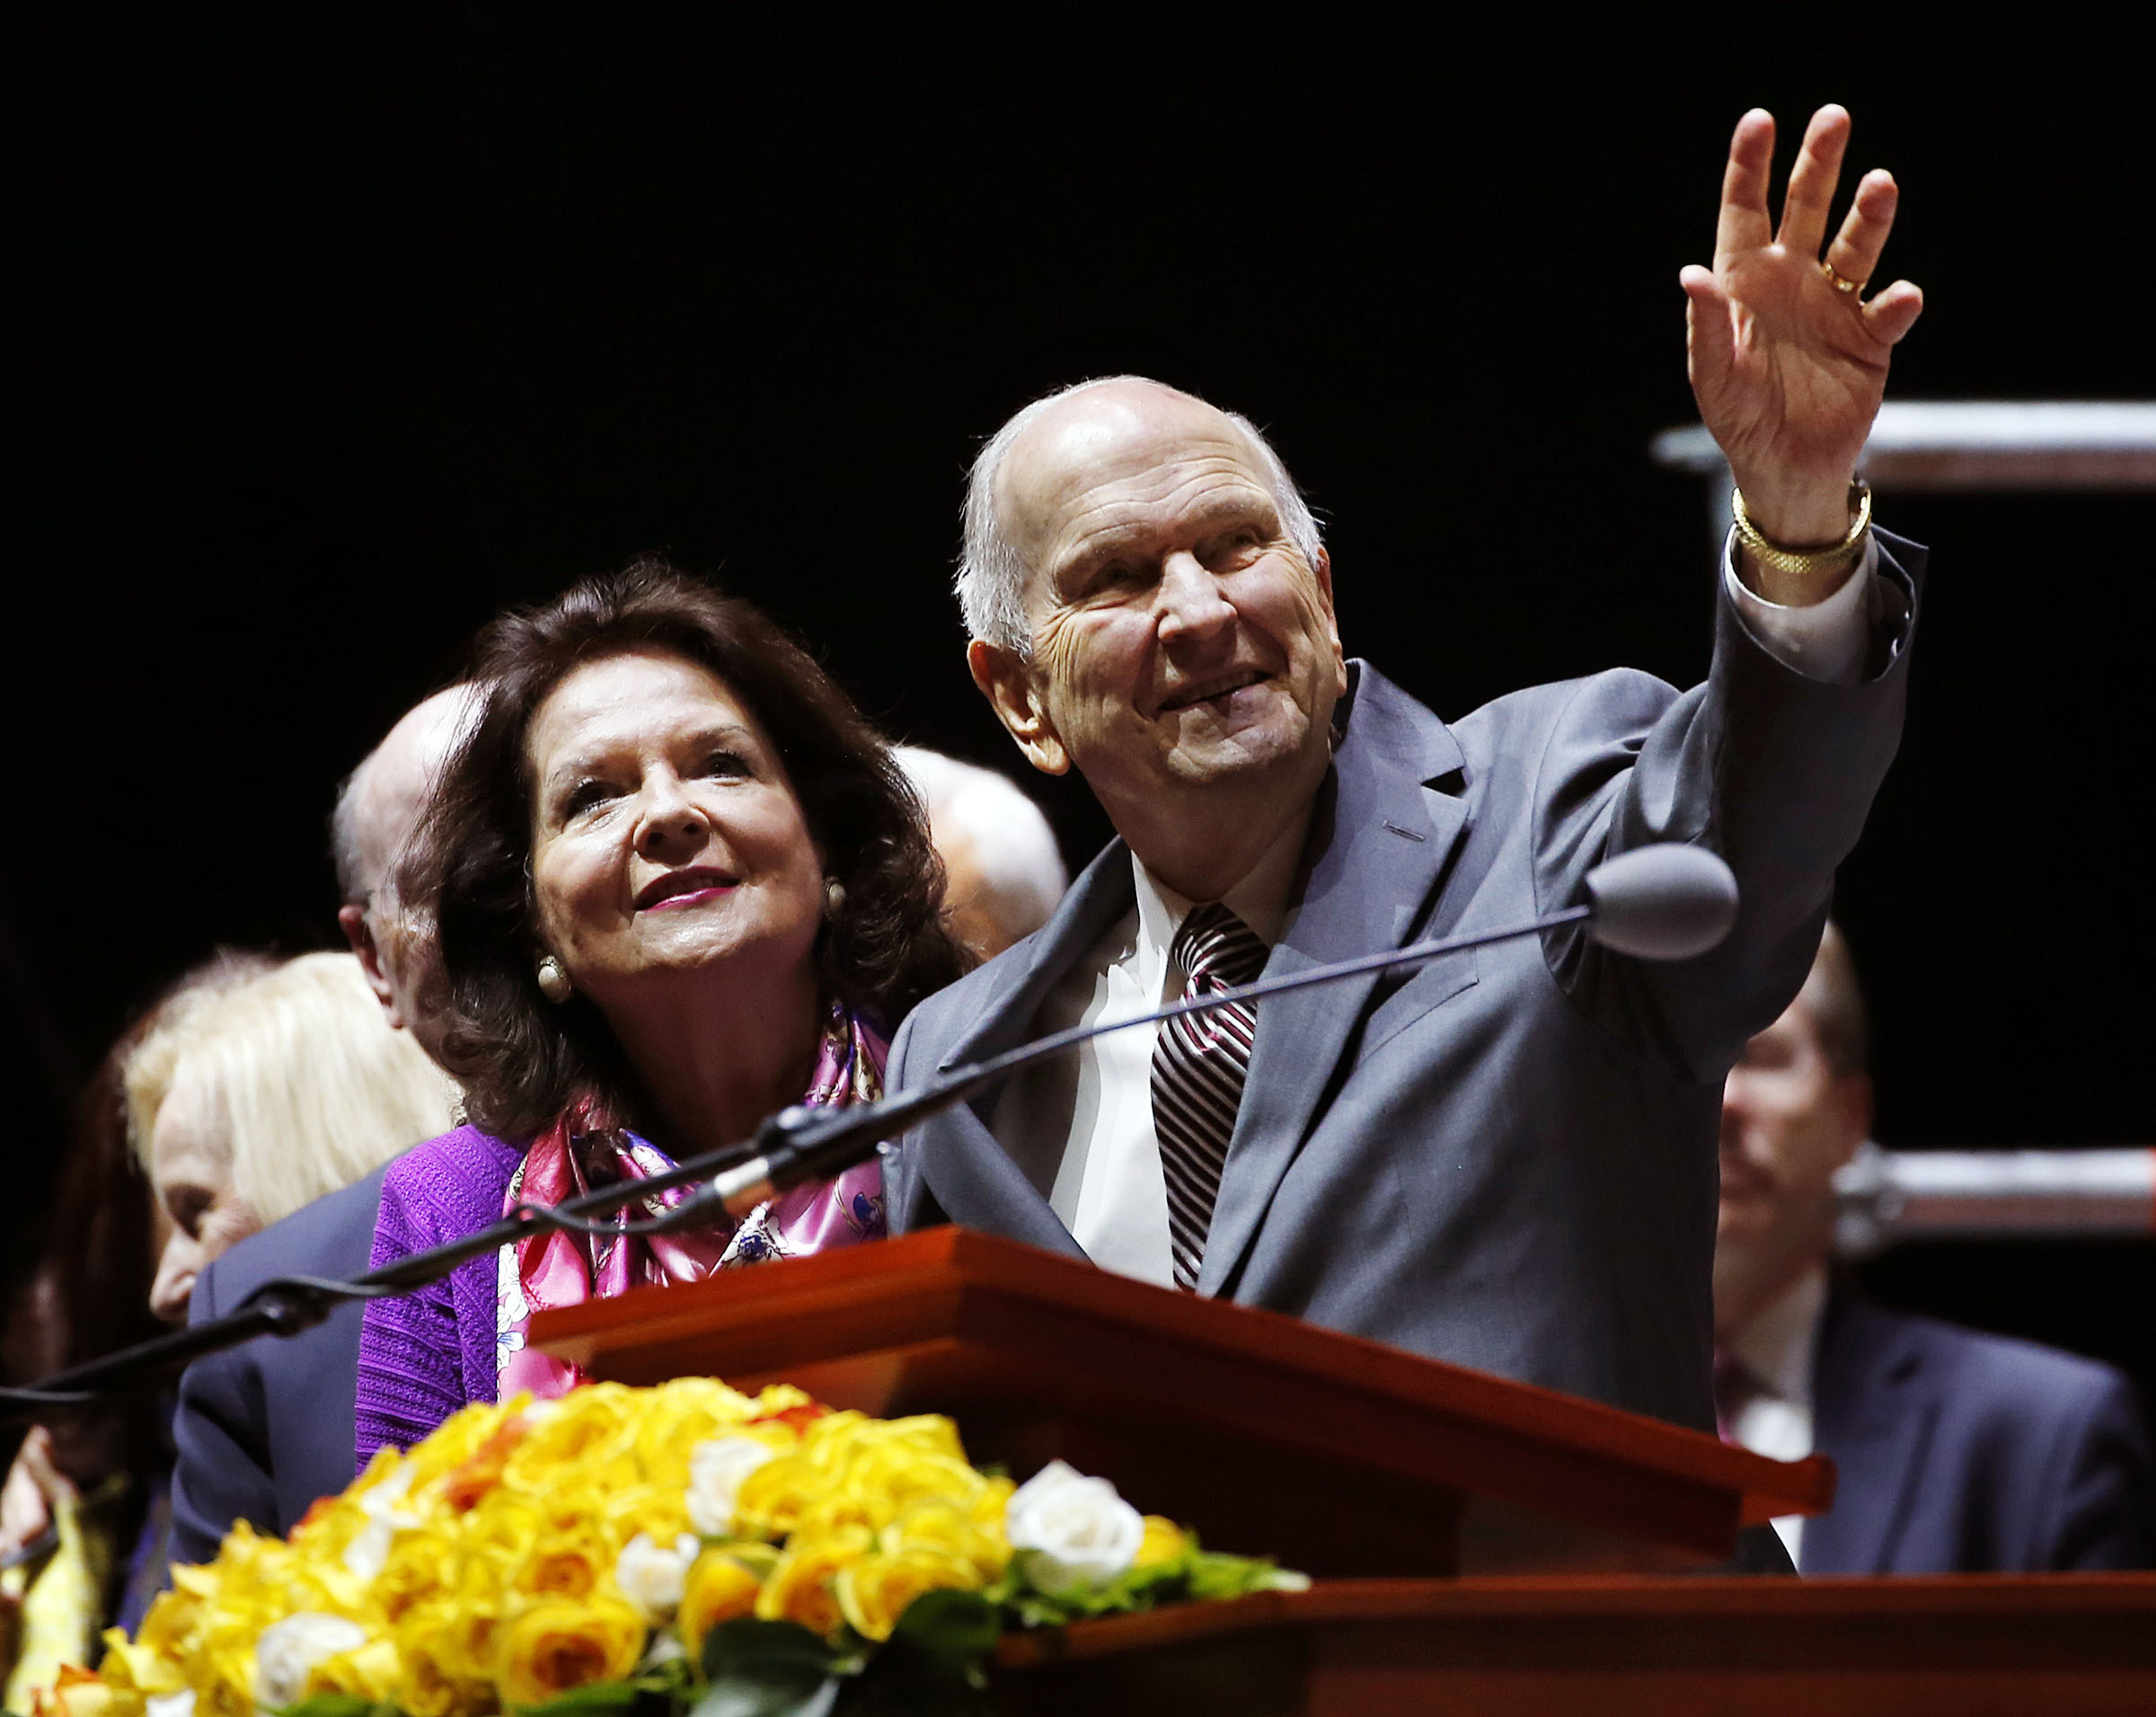 President Russell M. Nelson of The Church of Jesus Christ of Latter-day Saints and his wife, Sister Wendy Nelson, say goodbye at the conclusion of a Latin America Ministry Tour devotional in Bogota, Colombia, on Sunday, Aug. 25, 2019.